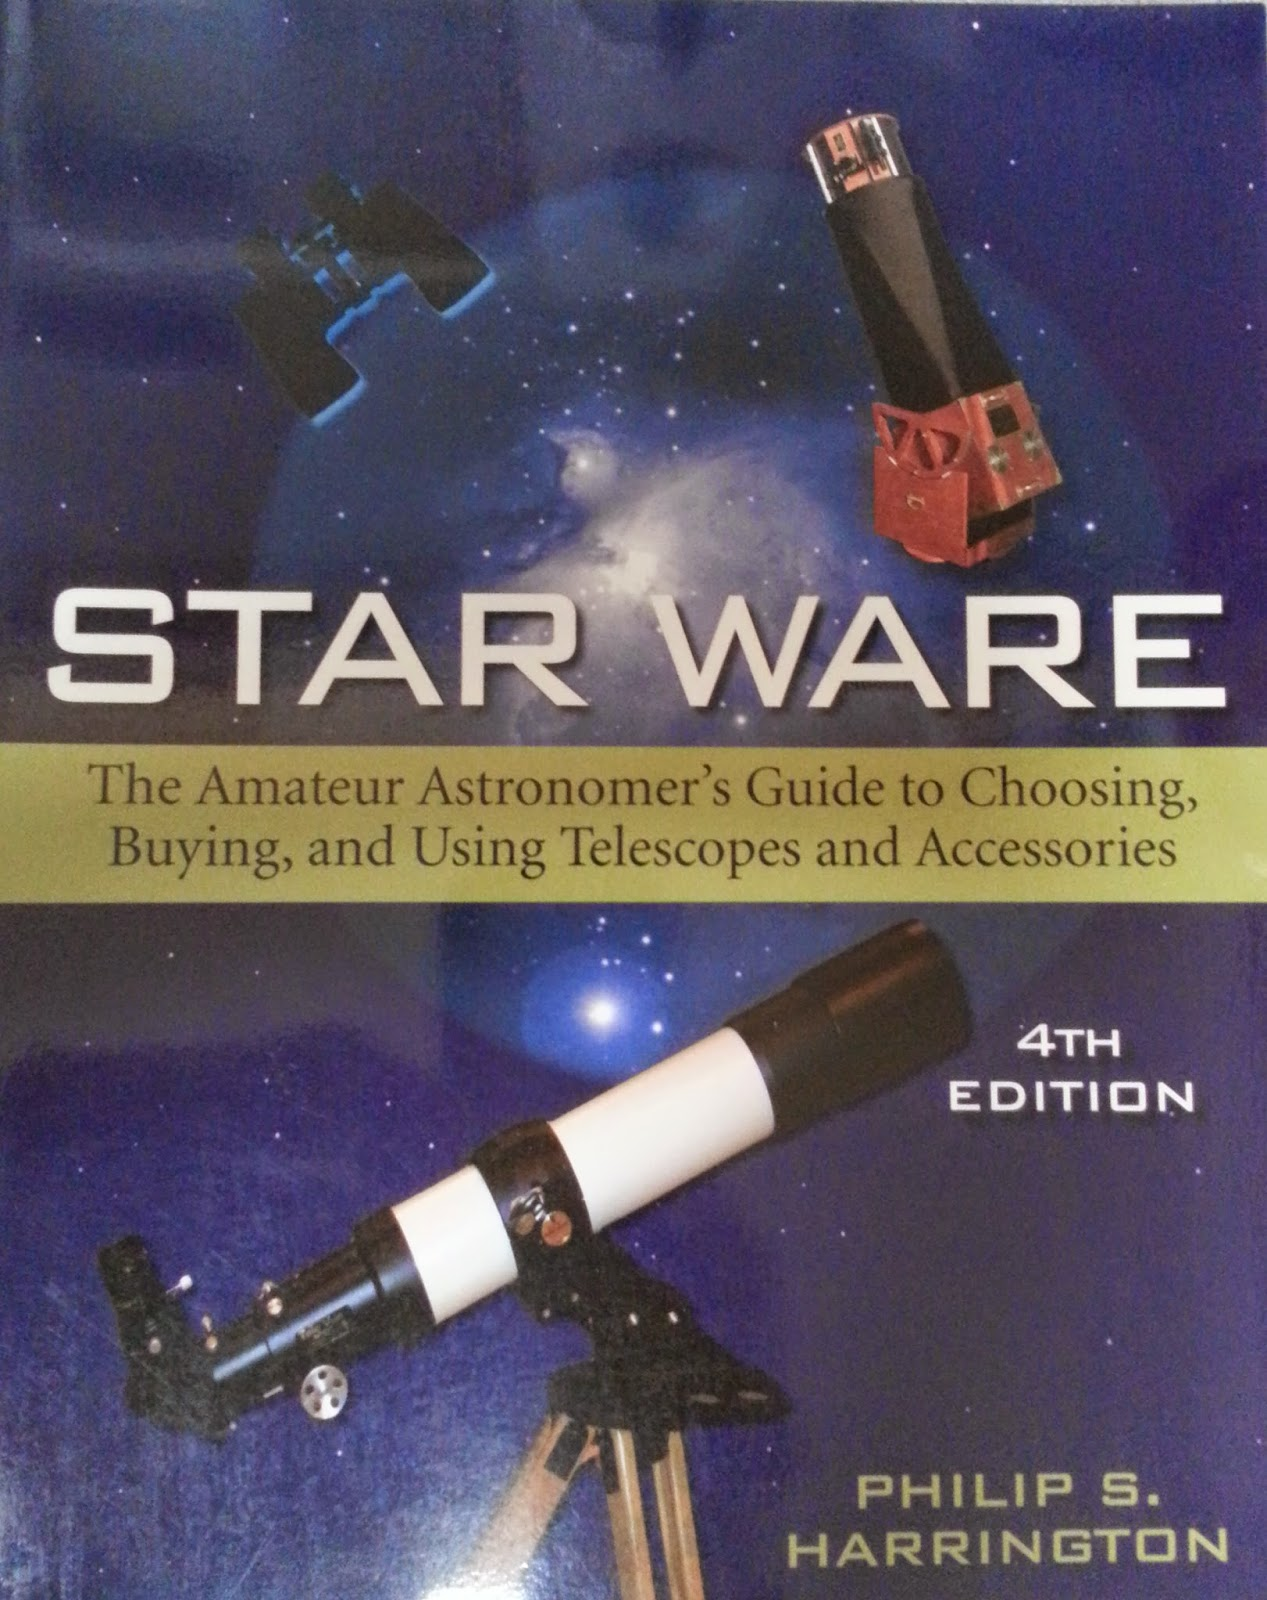 Darrenw astroblogger 2014 starware 4th edition front and back geenschuldenfo Choice Image